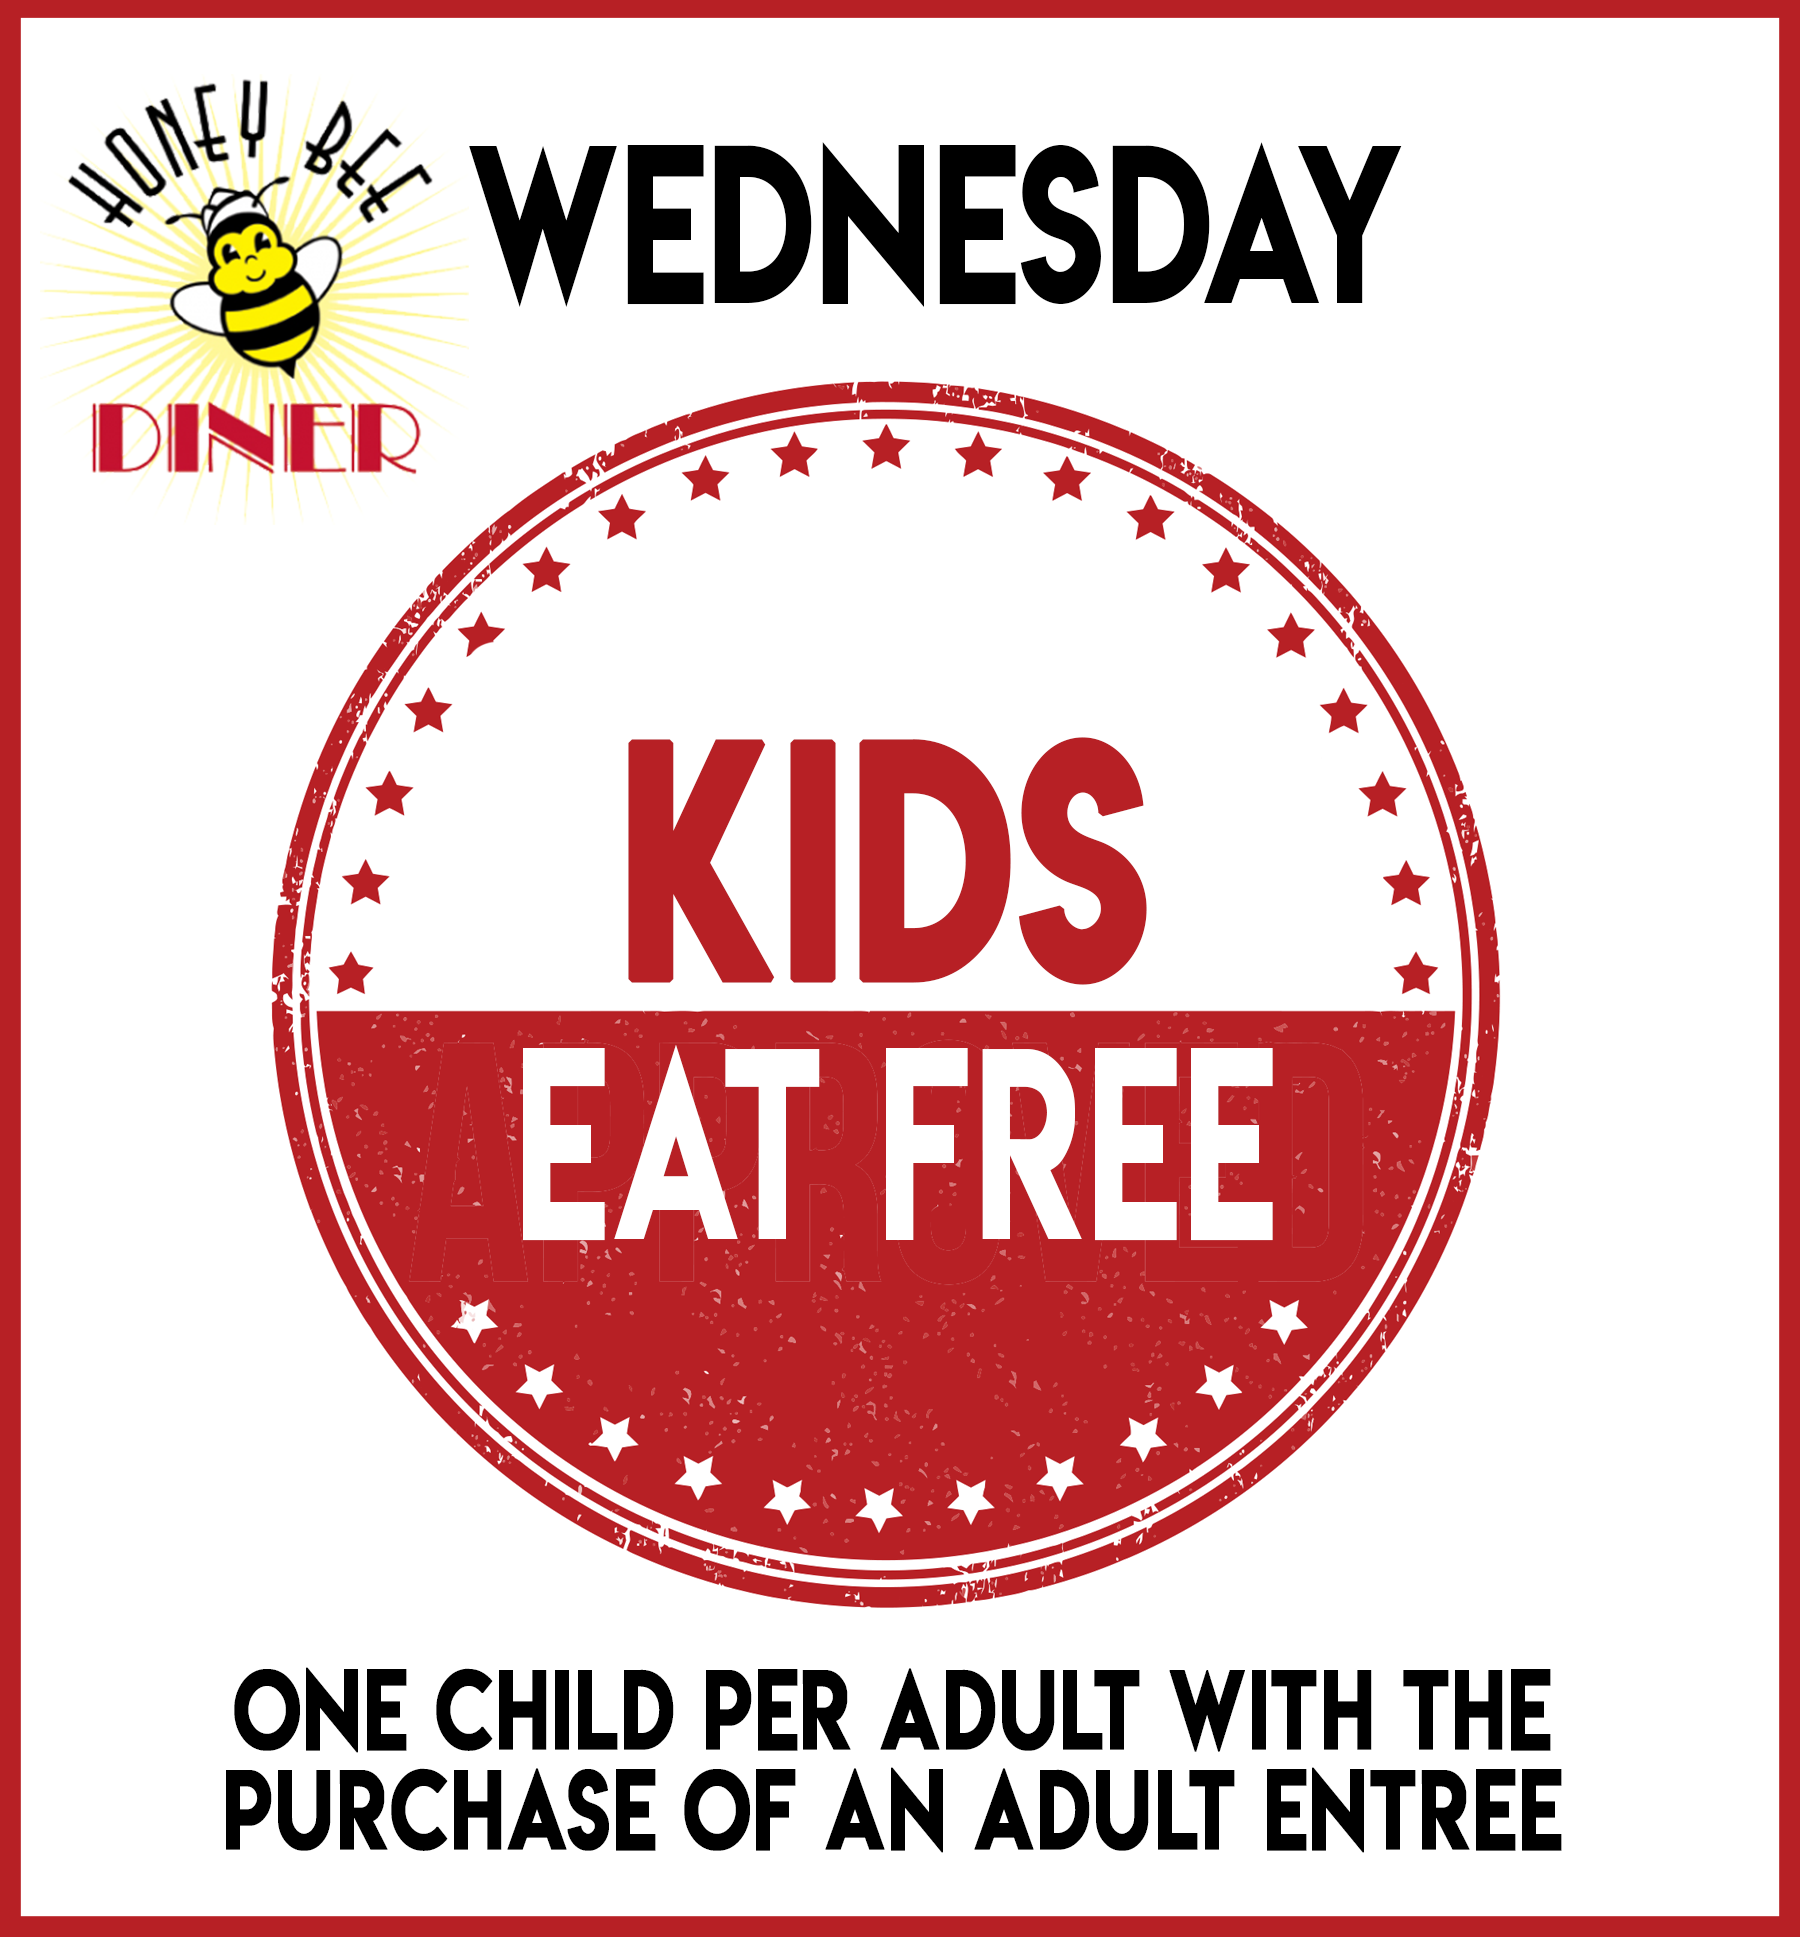 Kids Eat free on Wednesdays. One child per adult, with the purchase of an adult entree